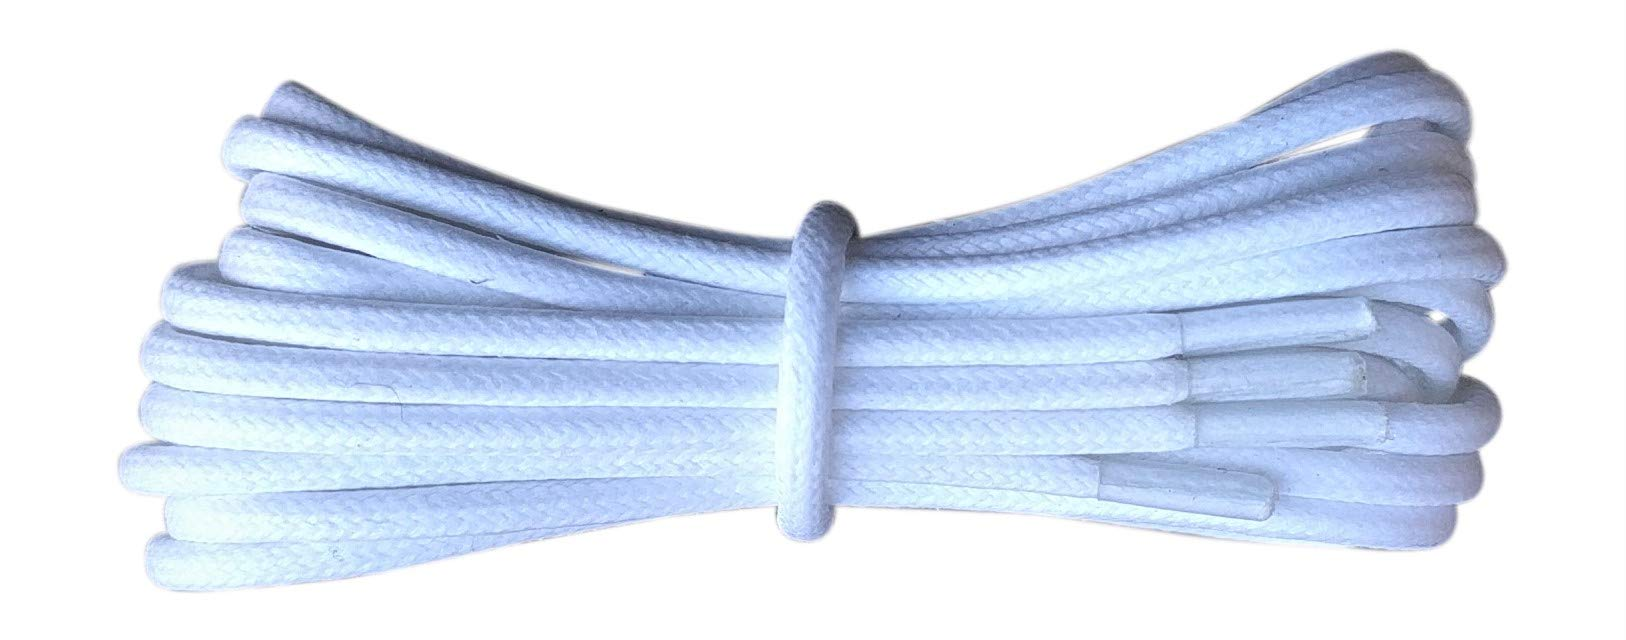 Thin Round White Waxed Cotton Shoelaces - 18'' / 45 cm length - Thin laces for dress shoes and boots.